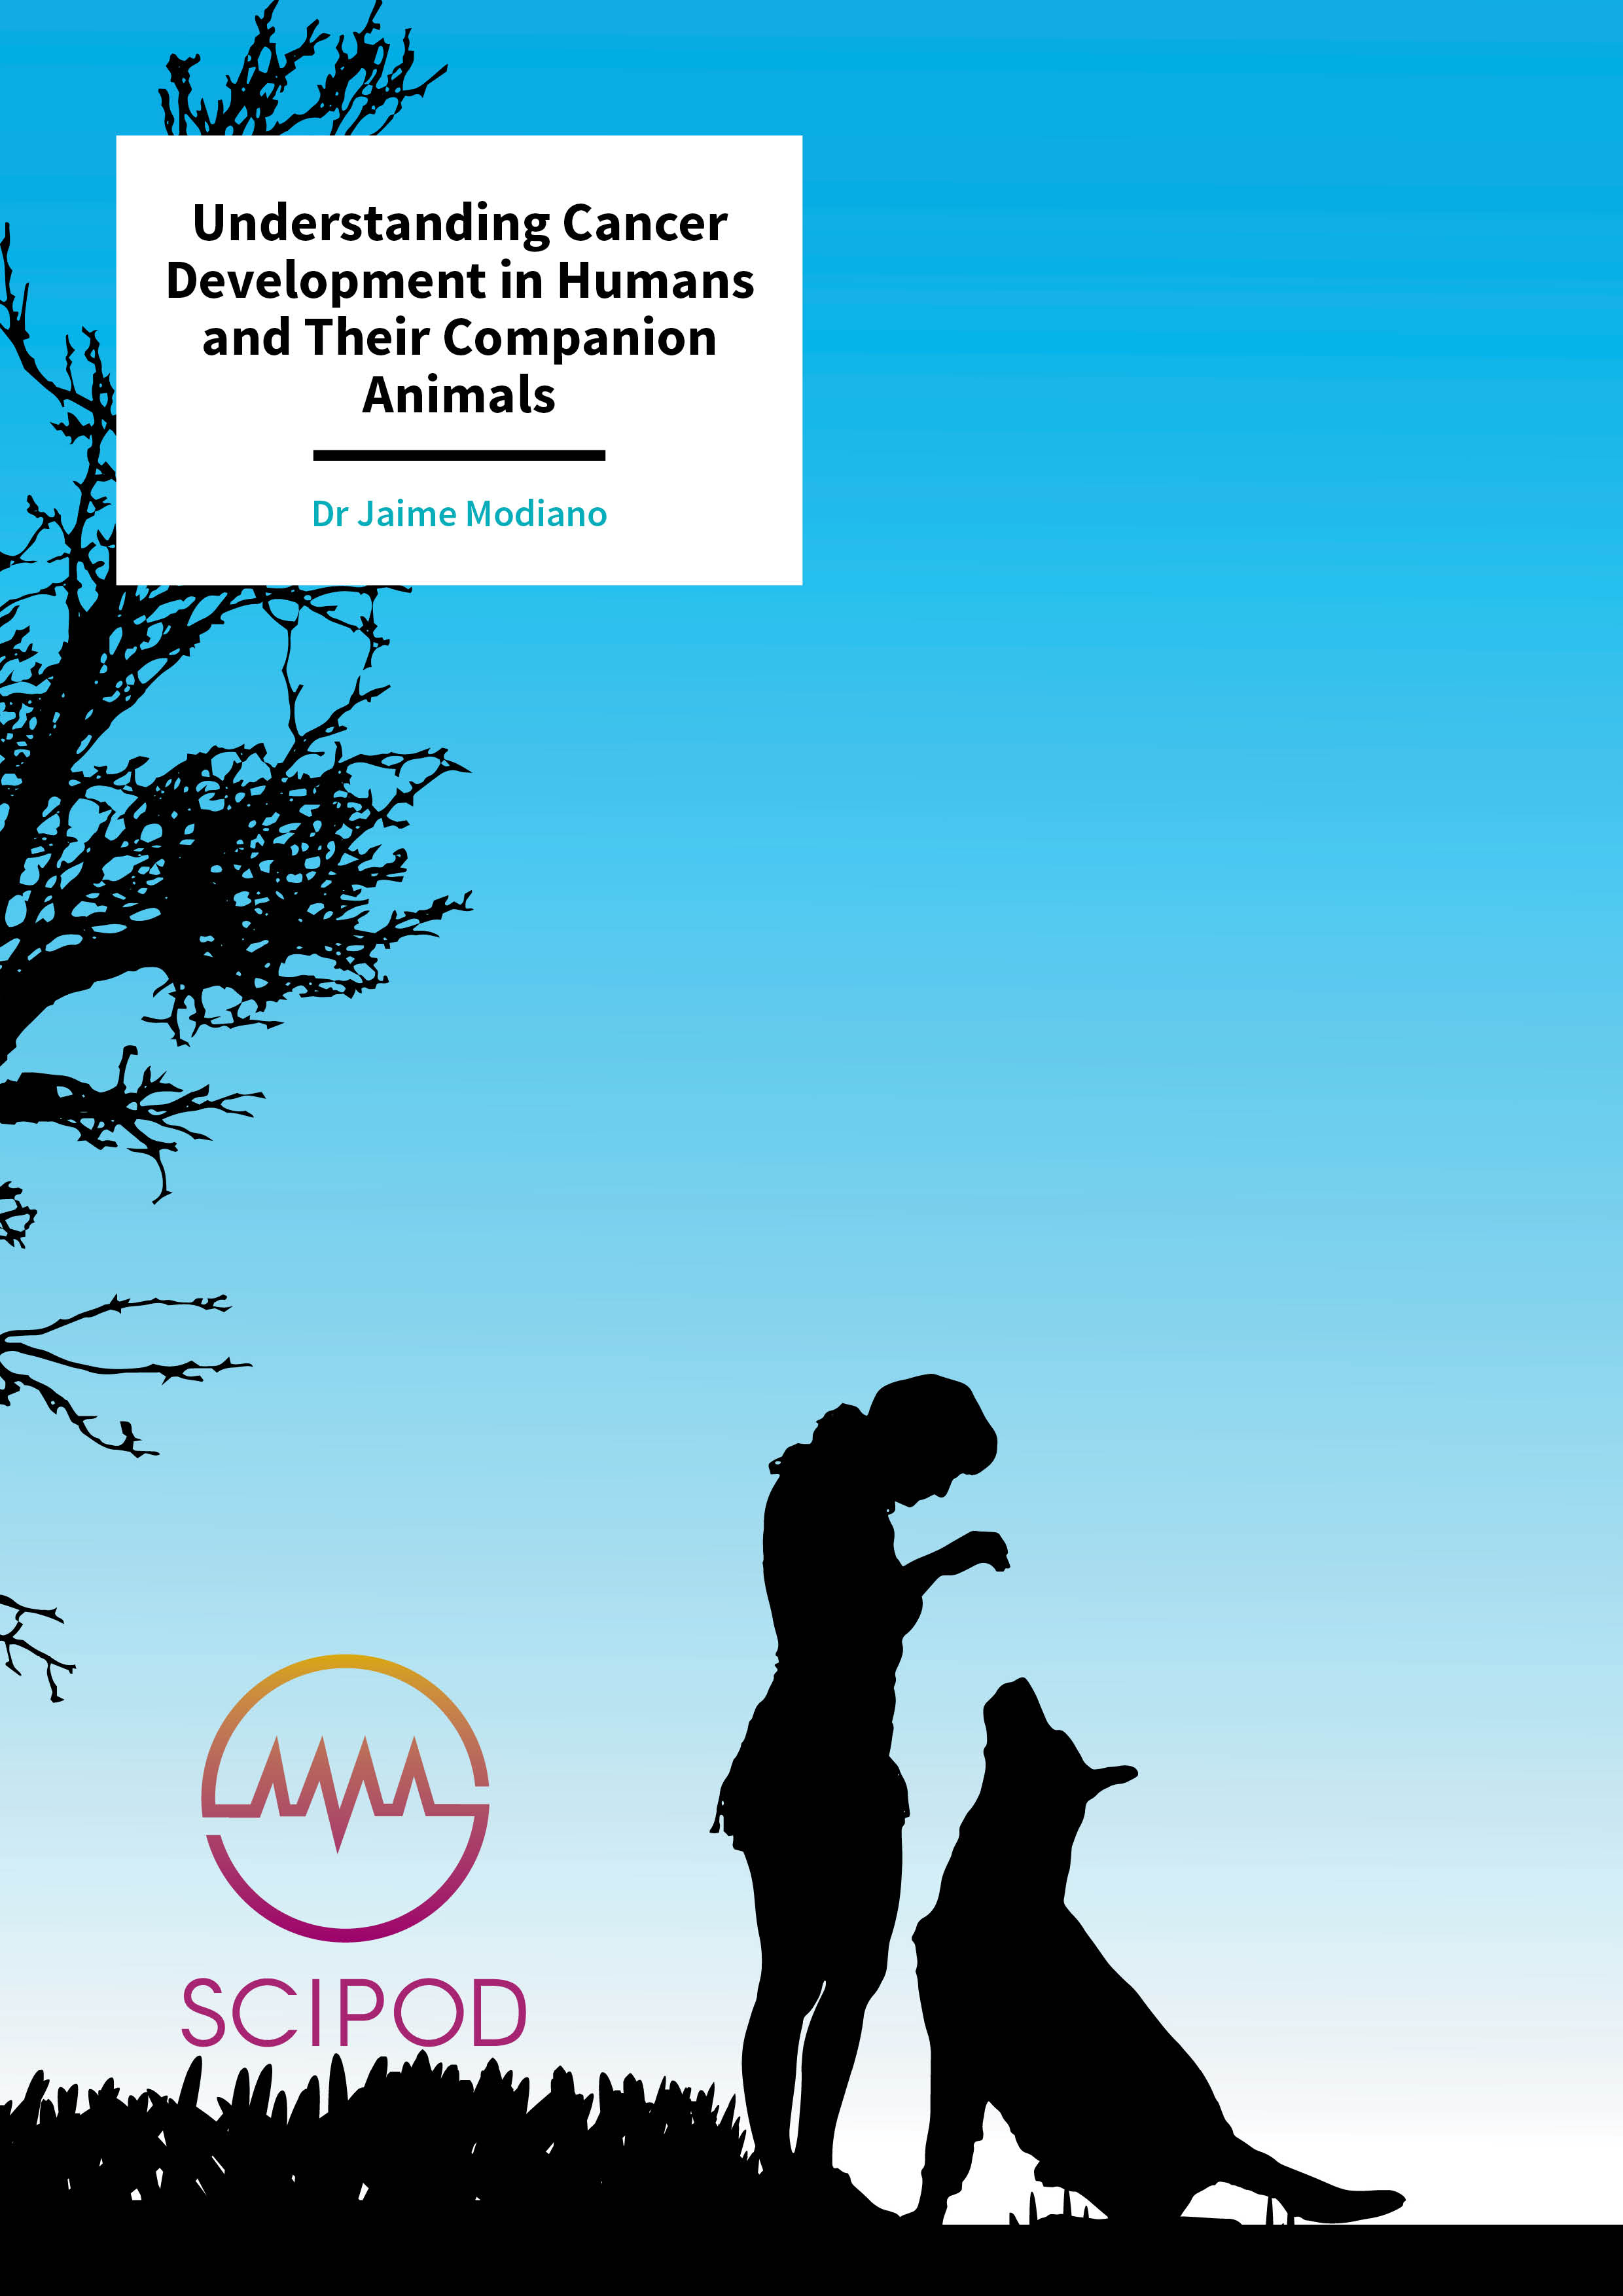 Understanding Cancer Development in Humans and Their Companion Animals – Dr Jaime Modiano, University of Minnesota